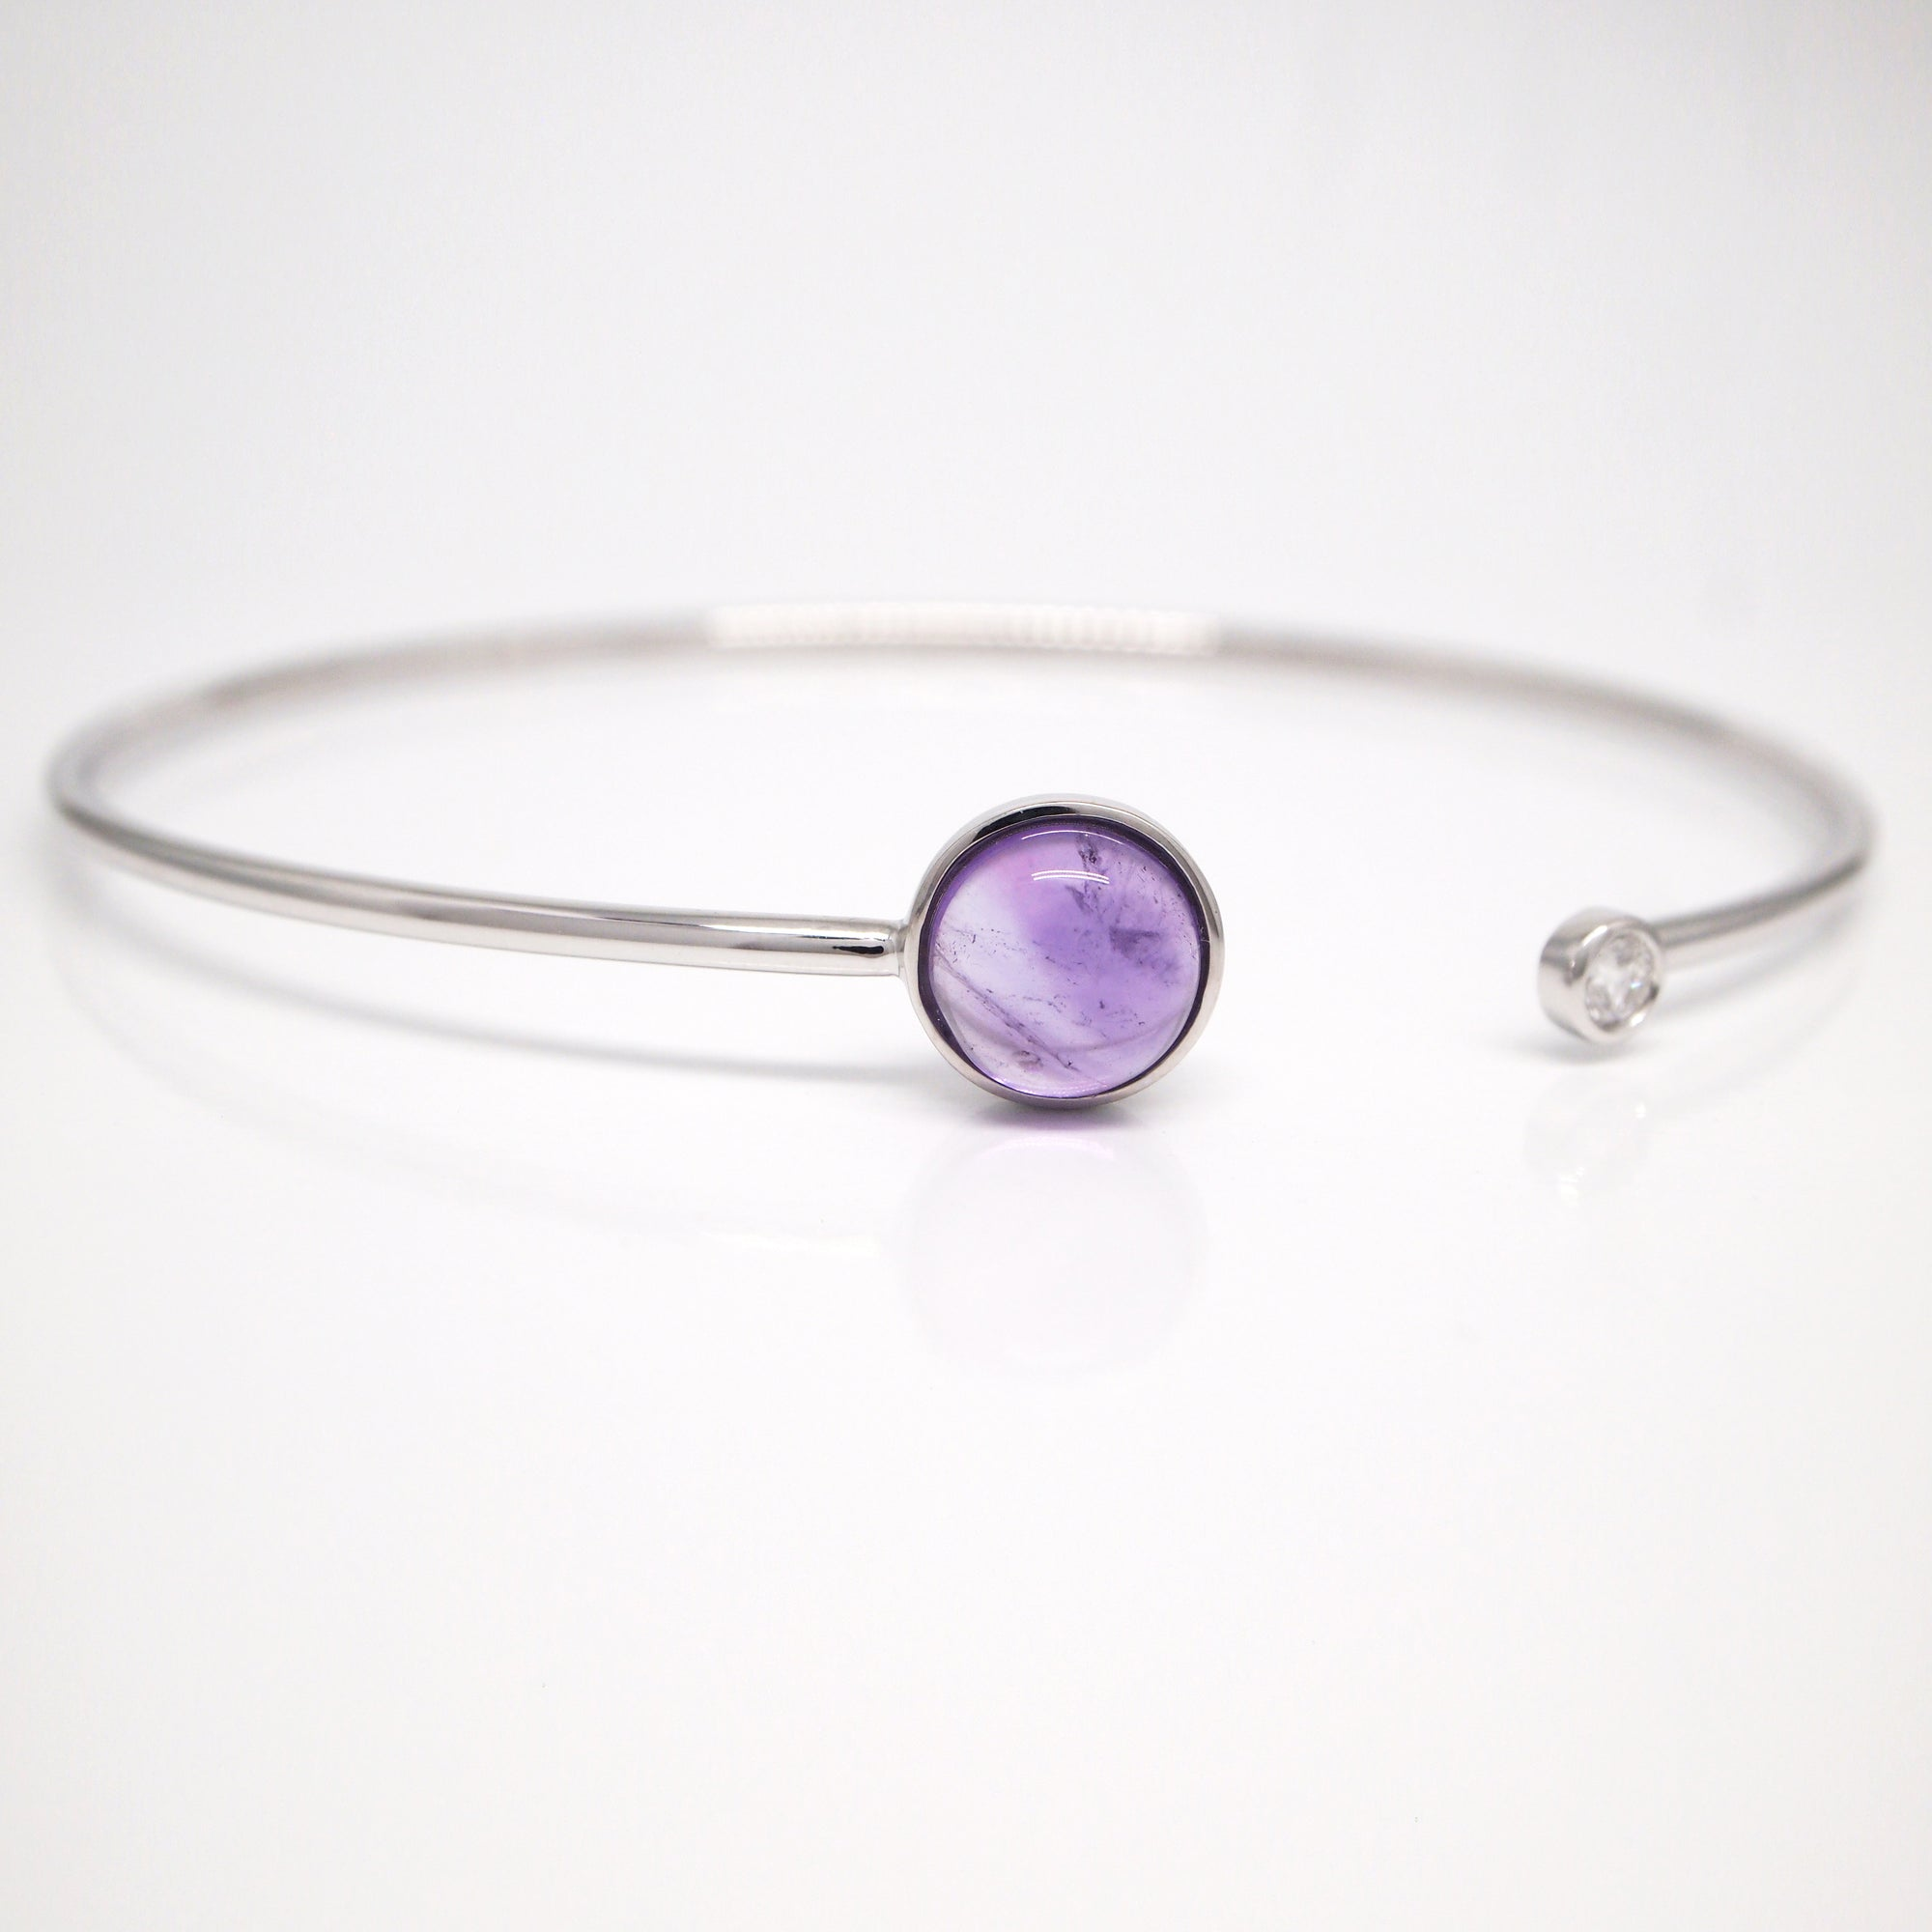 14K white gold bangle bracelet featuring an 8mm cabochon-cut amethyst and a bezel-set brilliant-cut diamond